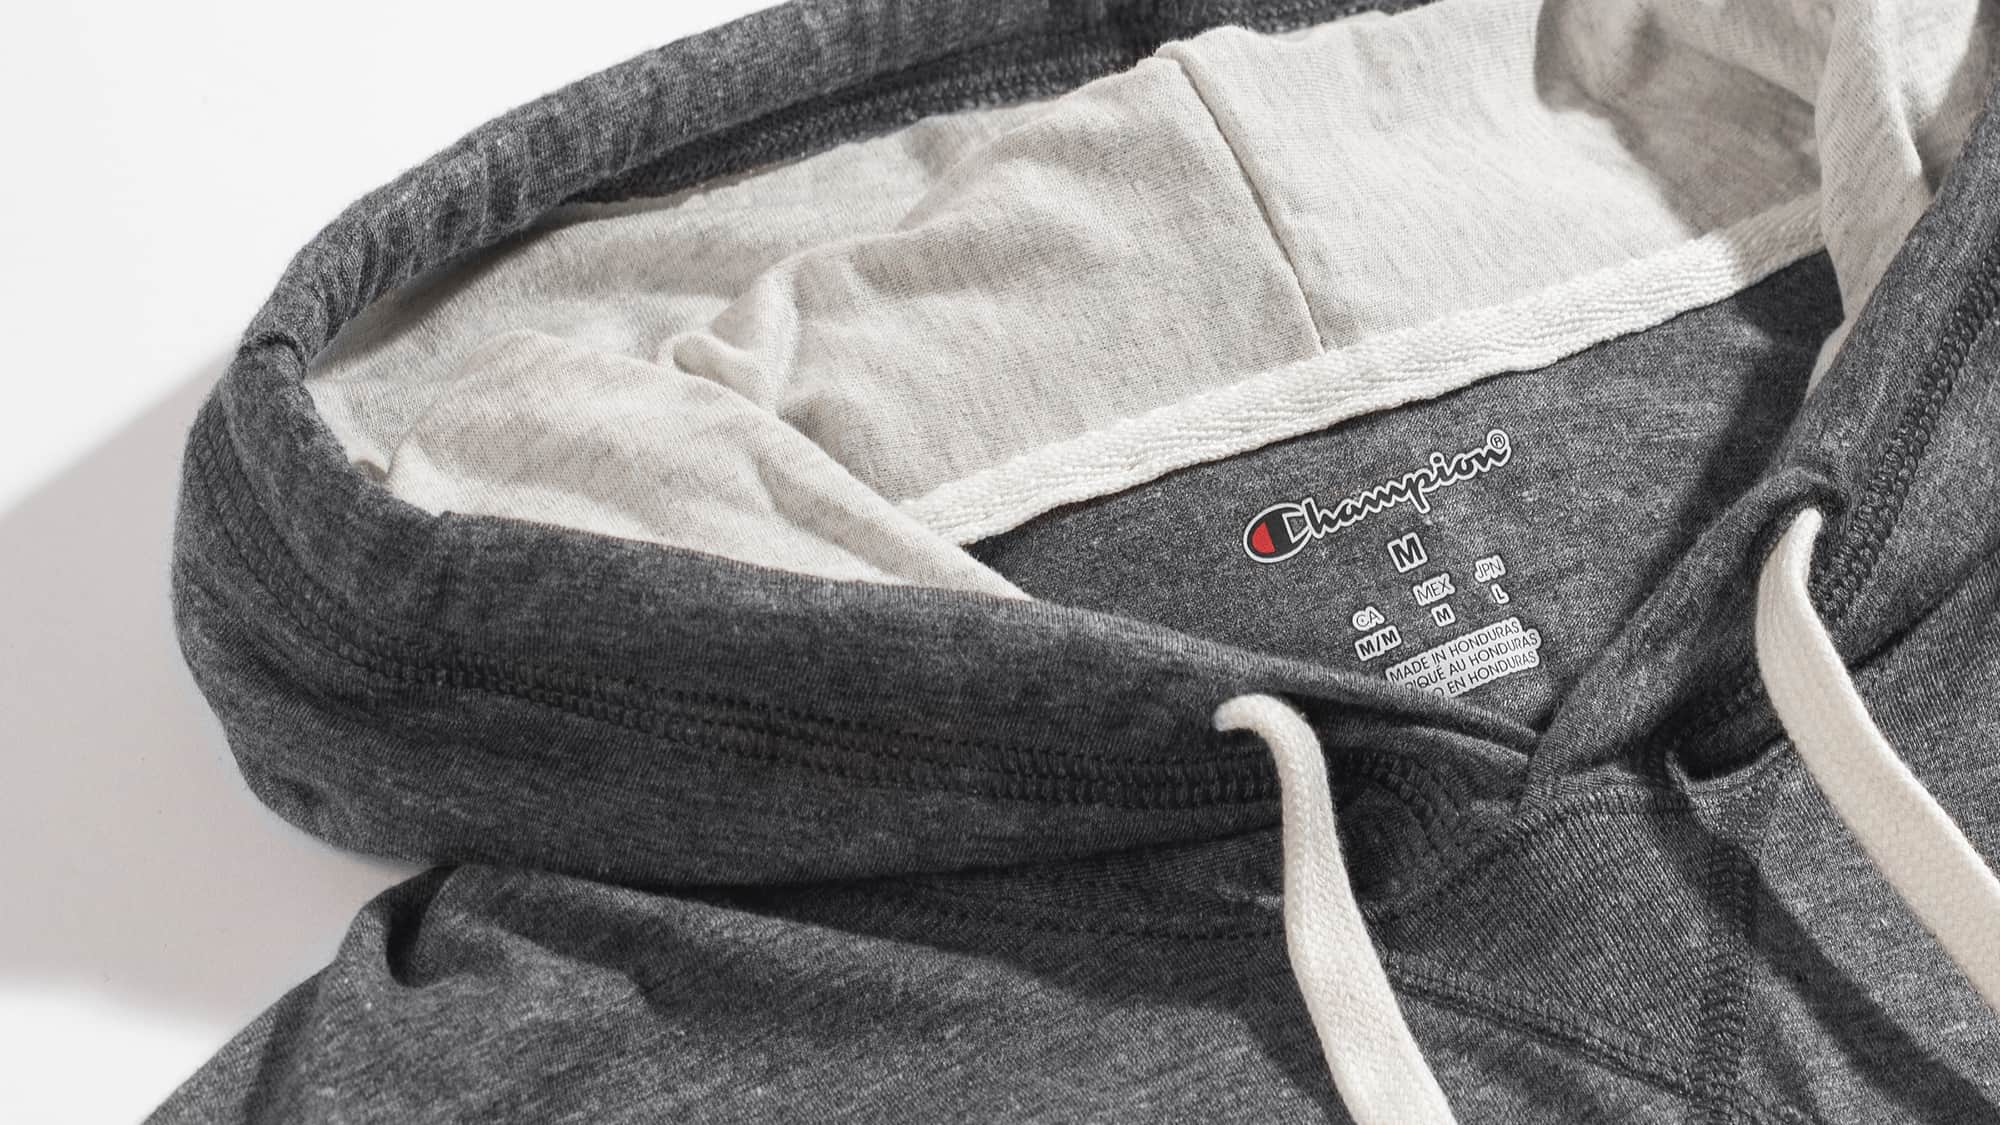 A detail shot of a Champion brand hoodie.